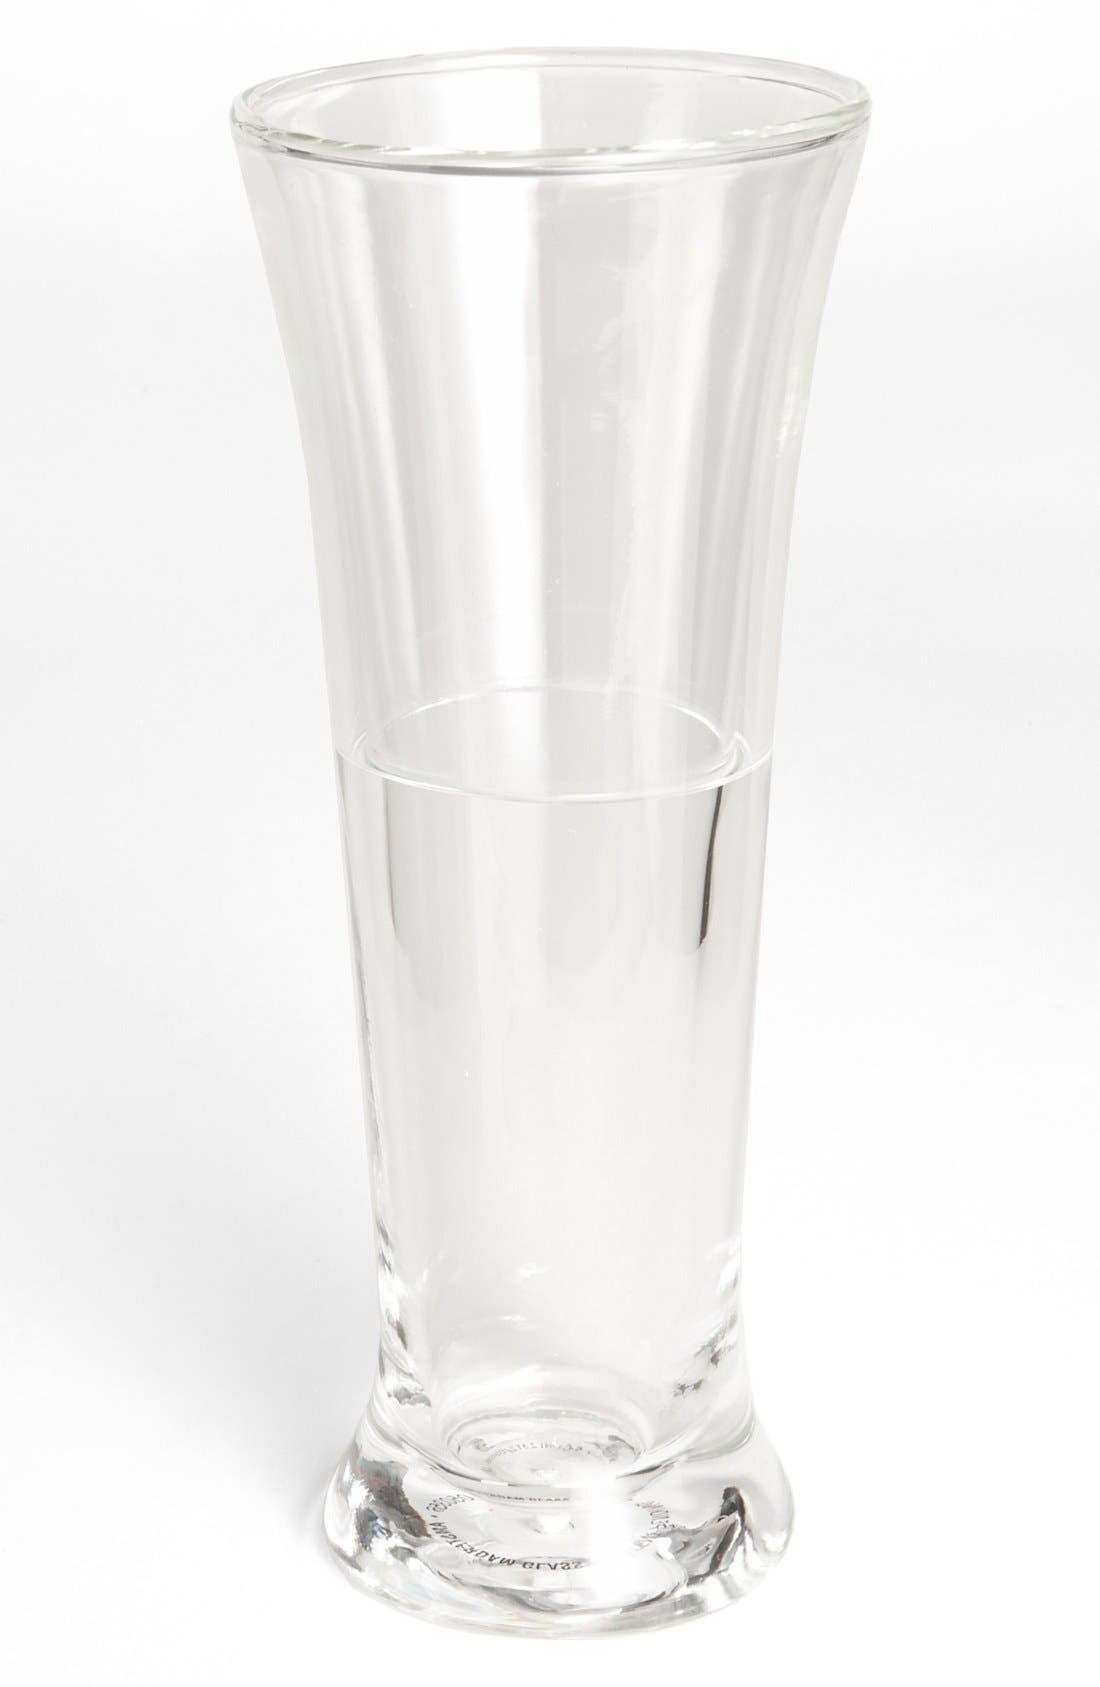 Alternate Image 1 Selected - Amsterdam Glass USA 'Freeze' Pilsner Glass